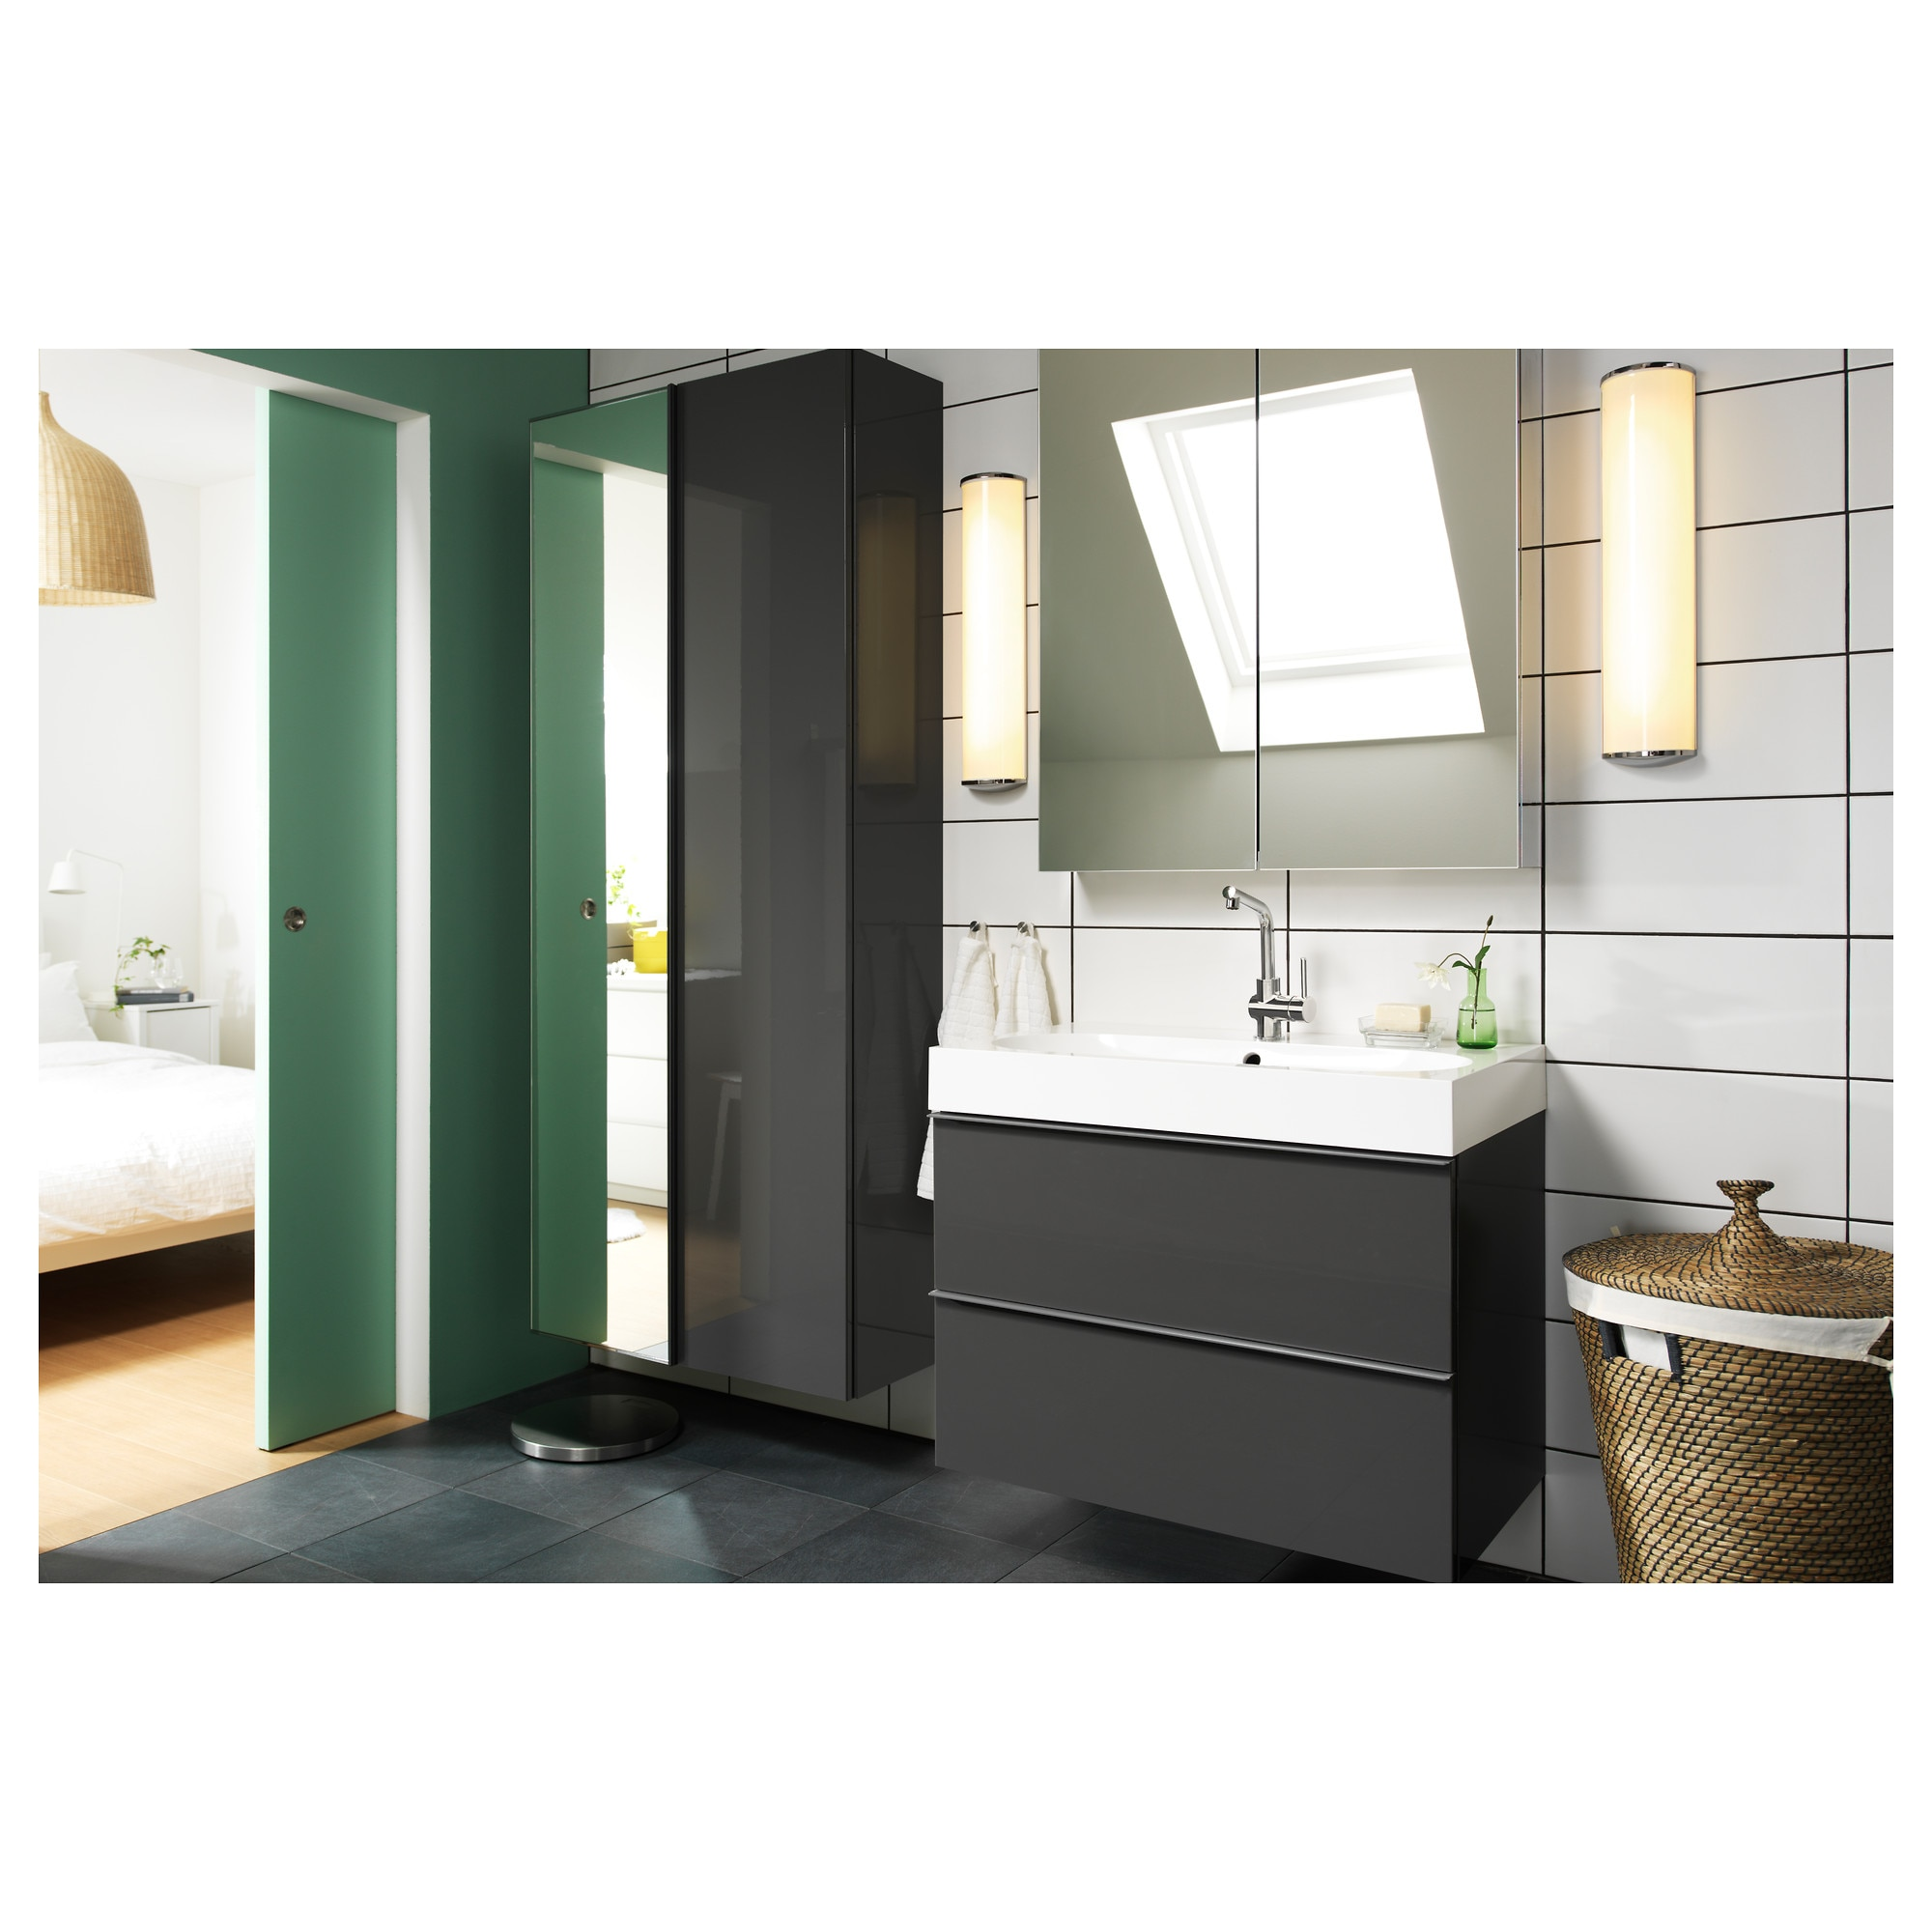 "2 Door Cupboard Inside Designs godmorgon mirror cabinet with 2 doors - 23 5/8x5 1/2x37 3/4 "" - ikea"